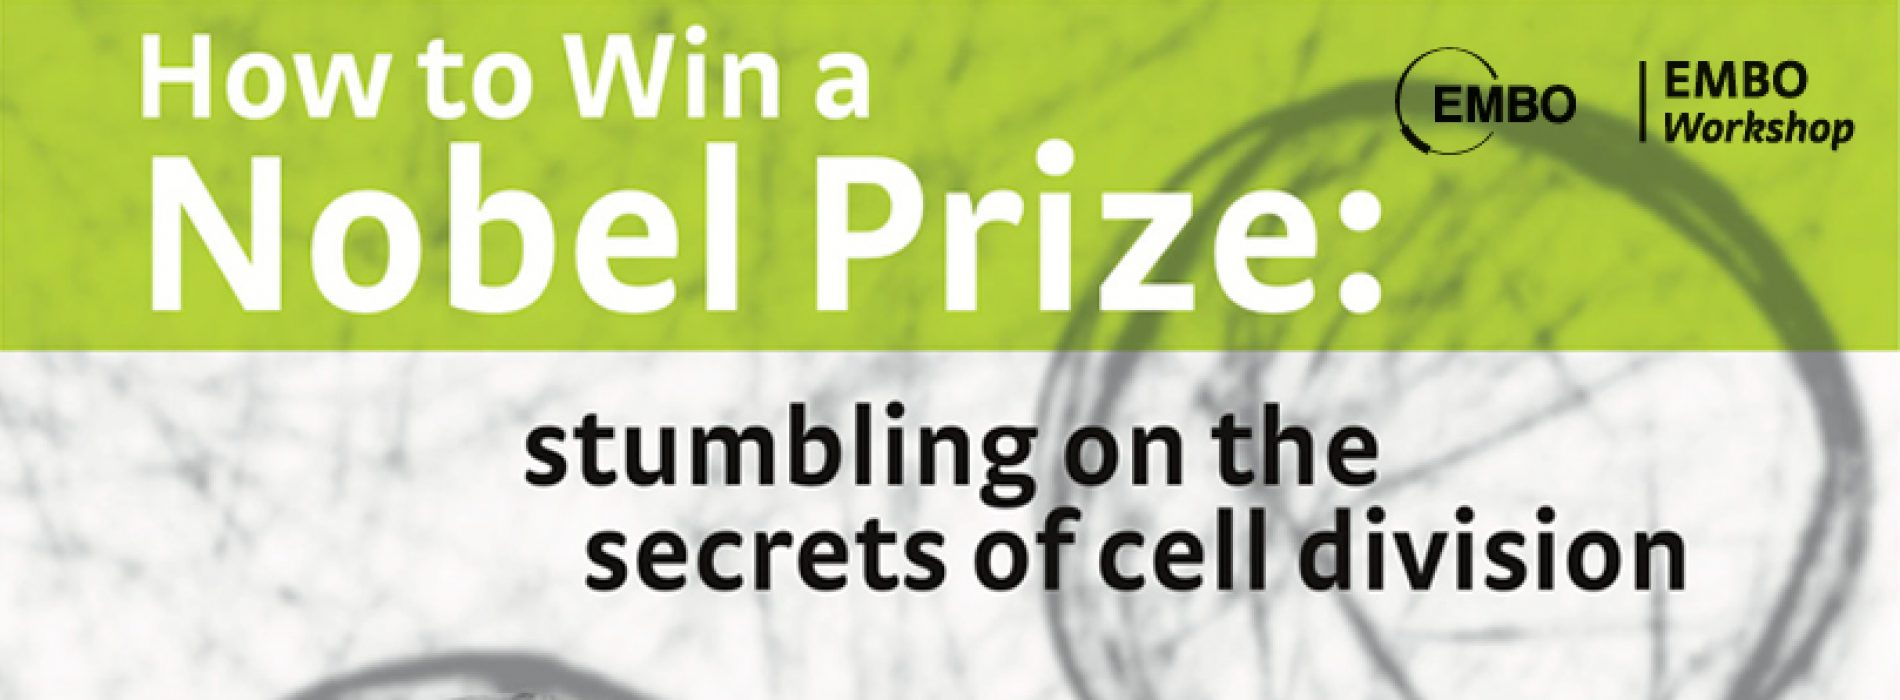 How to win a Nobel Price: Stumbling on the secrets of cell division